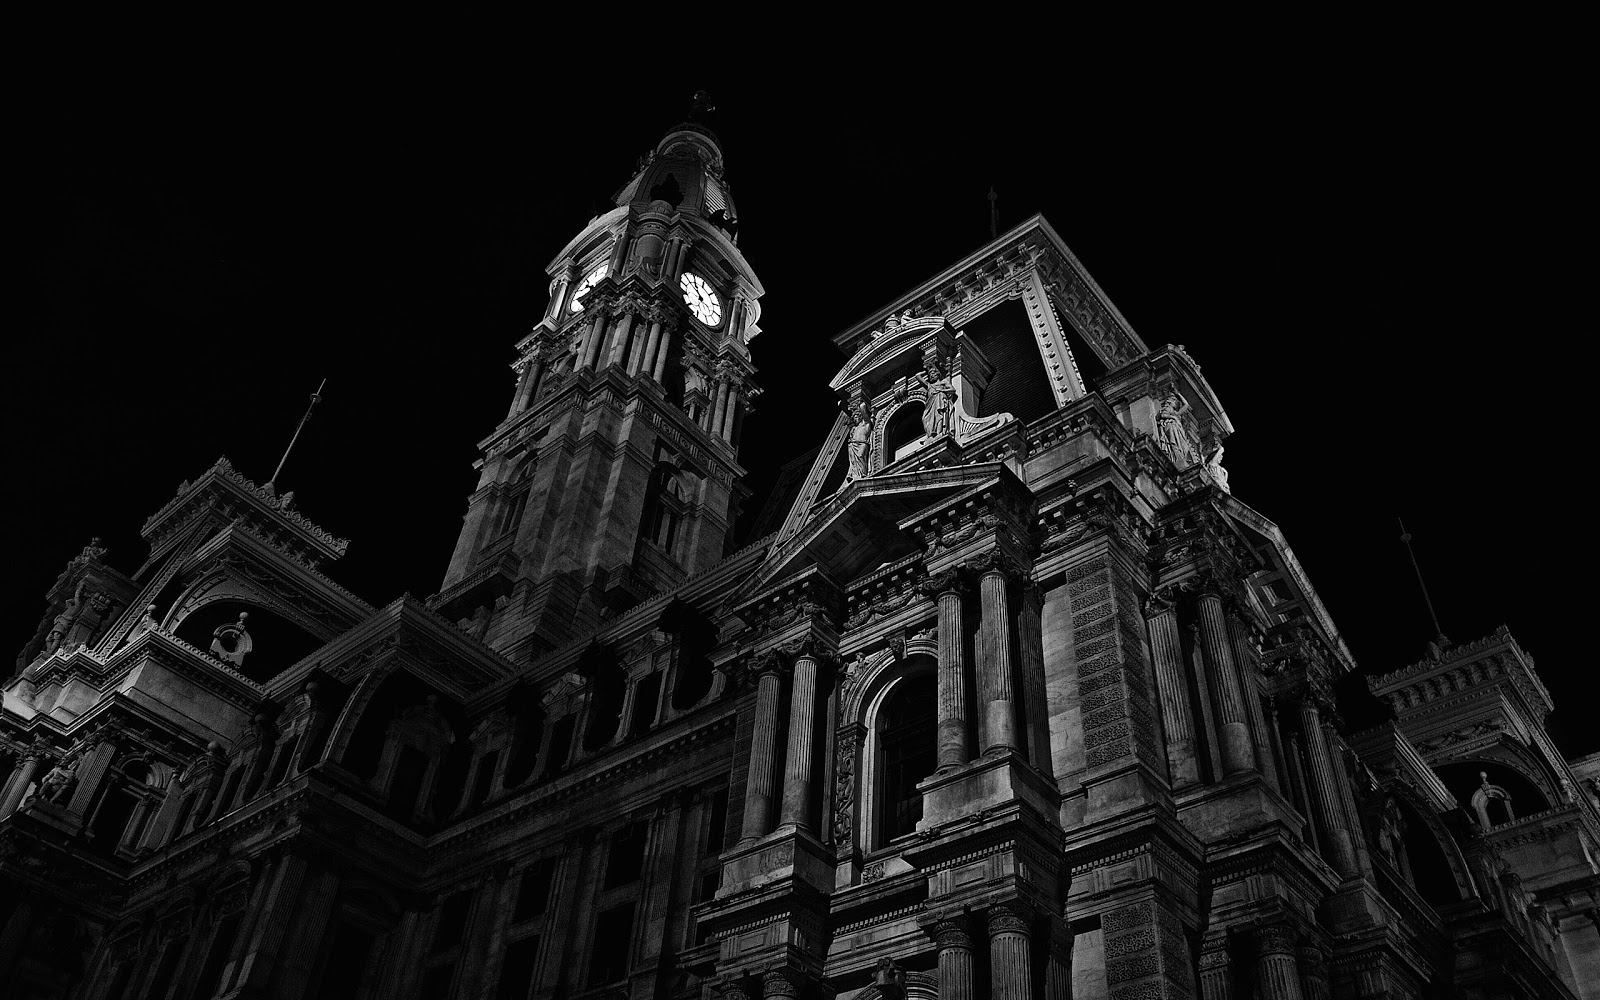 http://1.bp.blogspot.com/-AgkMsyYjnLo/T6gO2PFYnII/AAAAAAAARdk/zWbvStmIKkY/s1600/black-and-white-City-Hall2560x1600.jpg